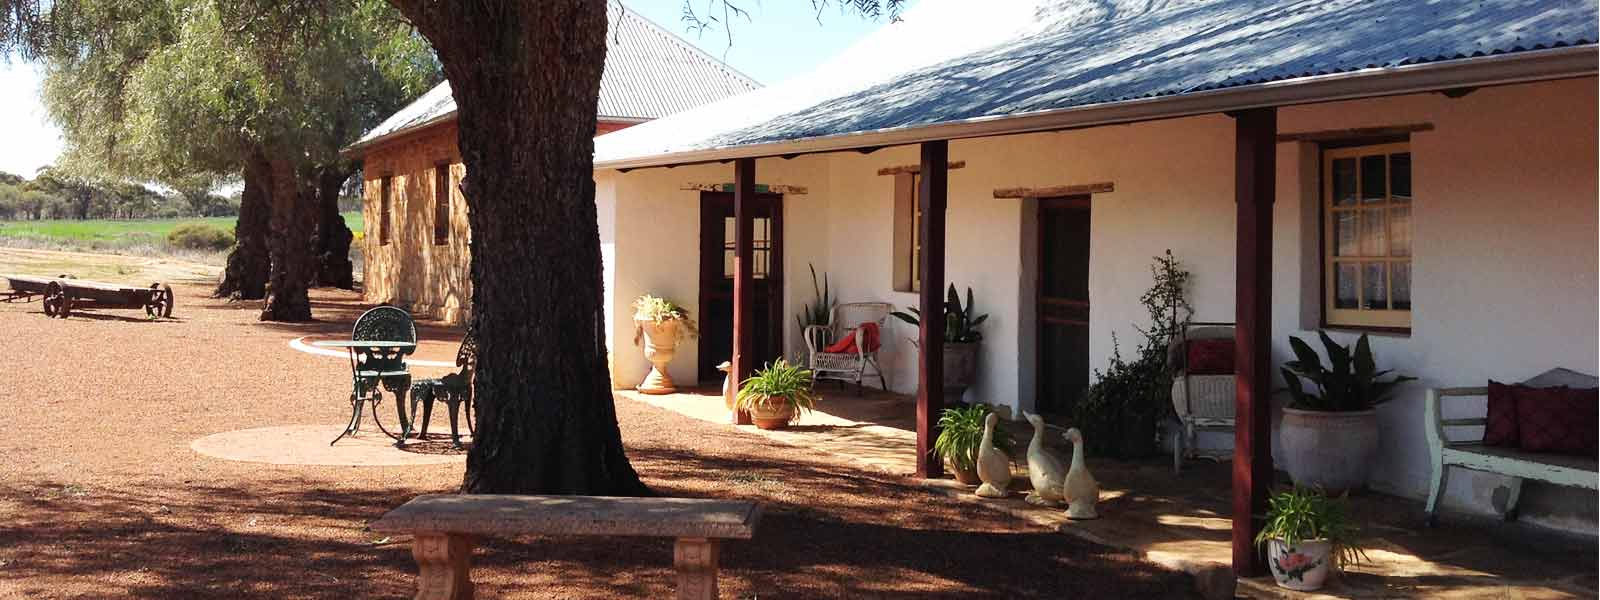 historic-B&B, bed-and-breakfast-accommodation